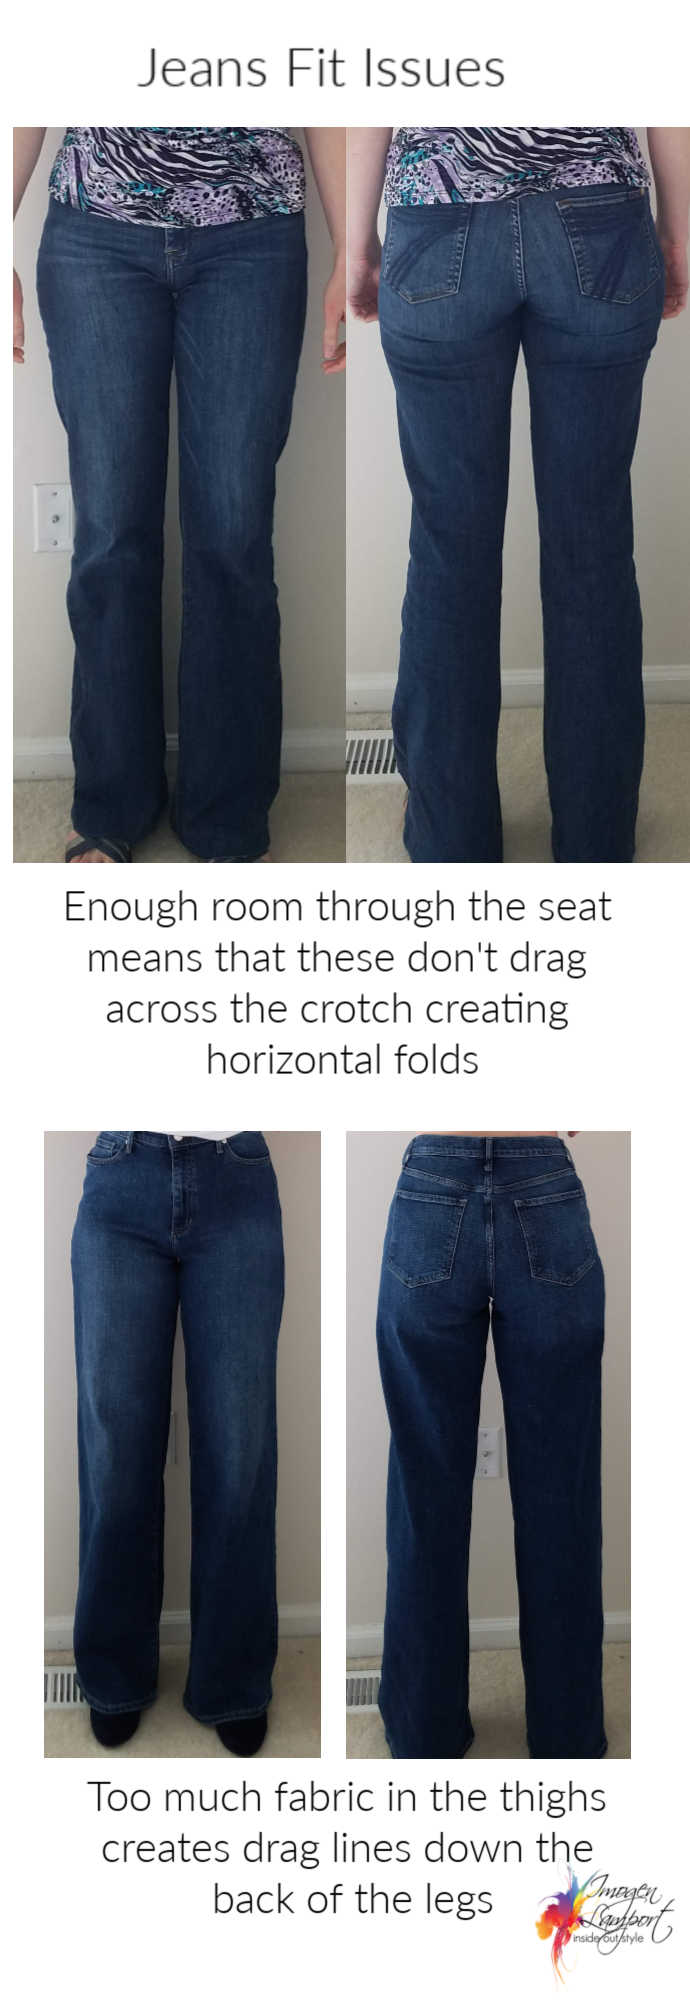 Why trousers are so hard to fit - fit issues and drag lines